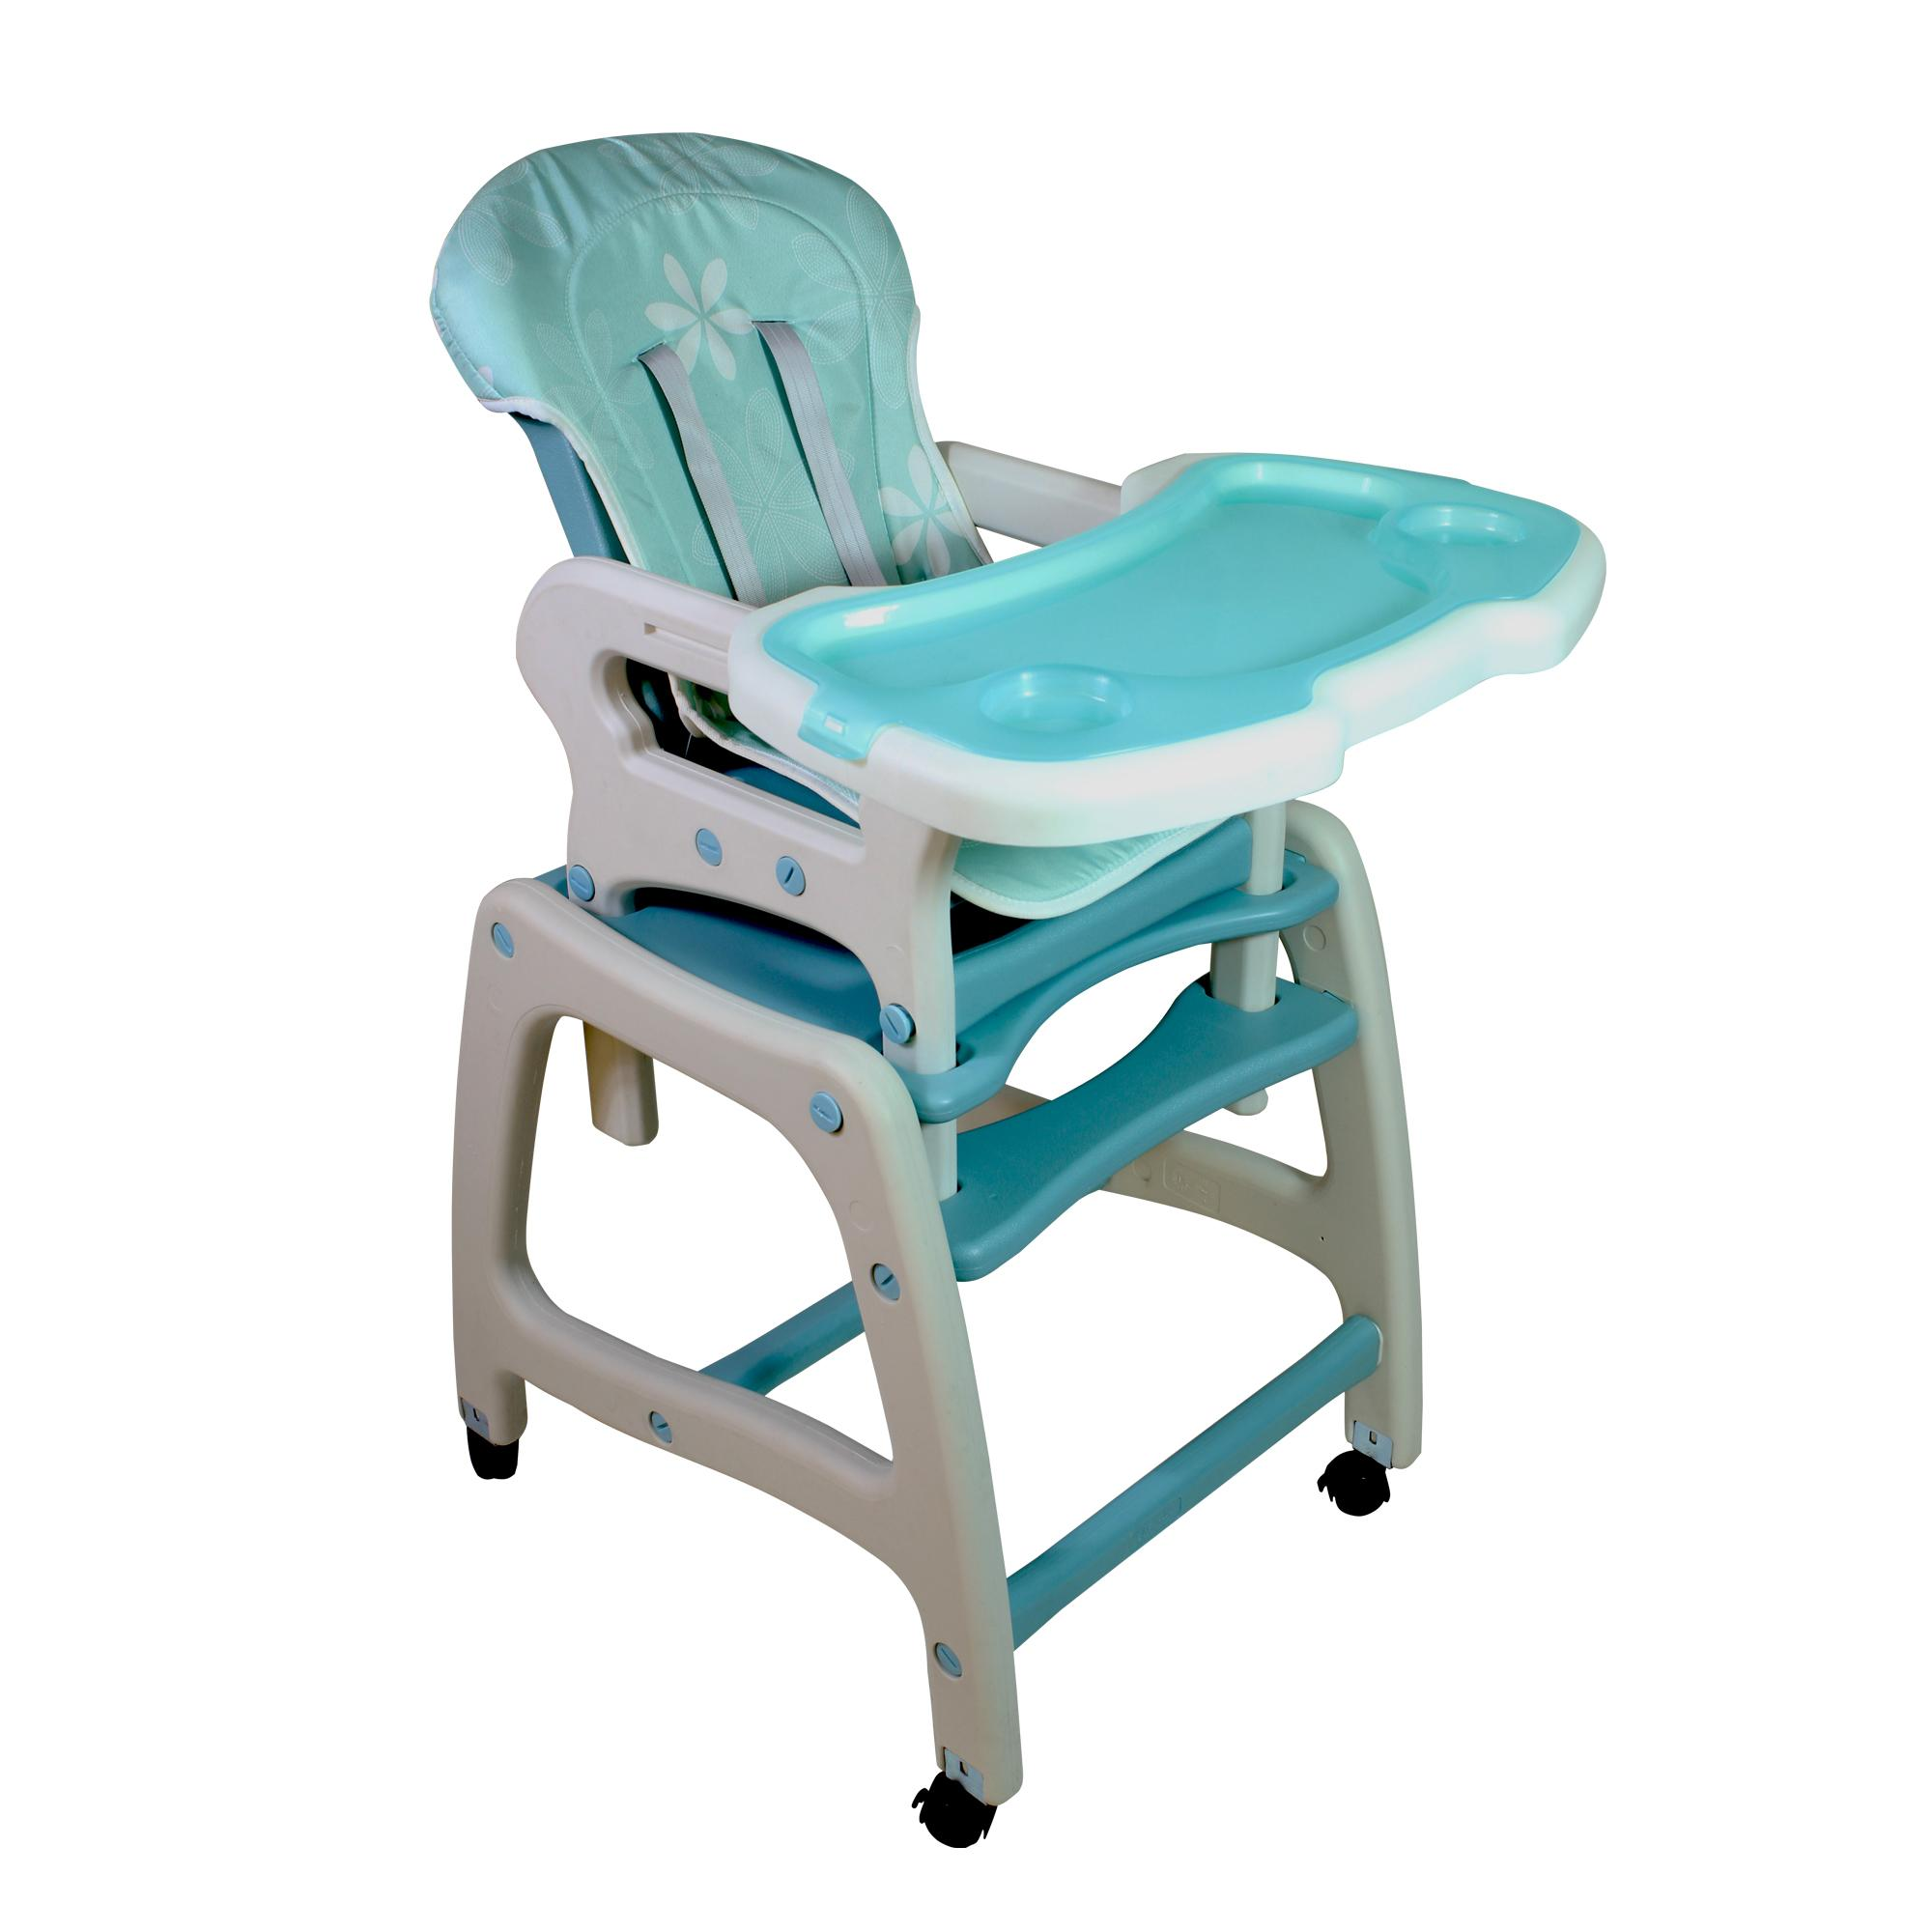 High Chair Booster for sale - Booster Chairs online brands, prices ...